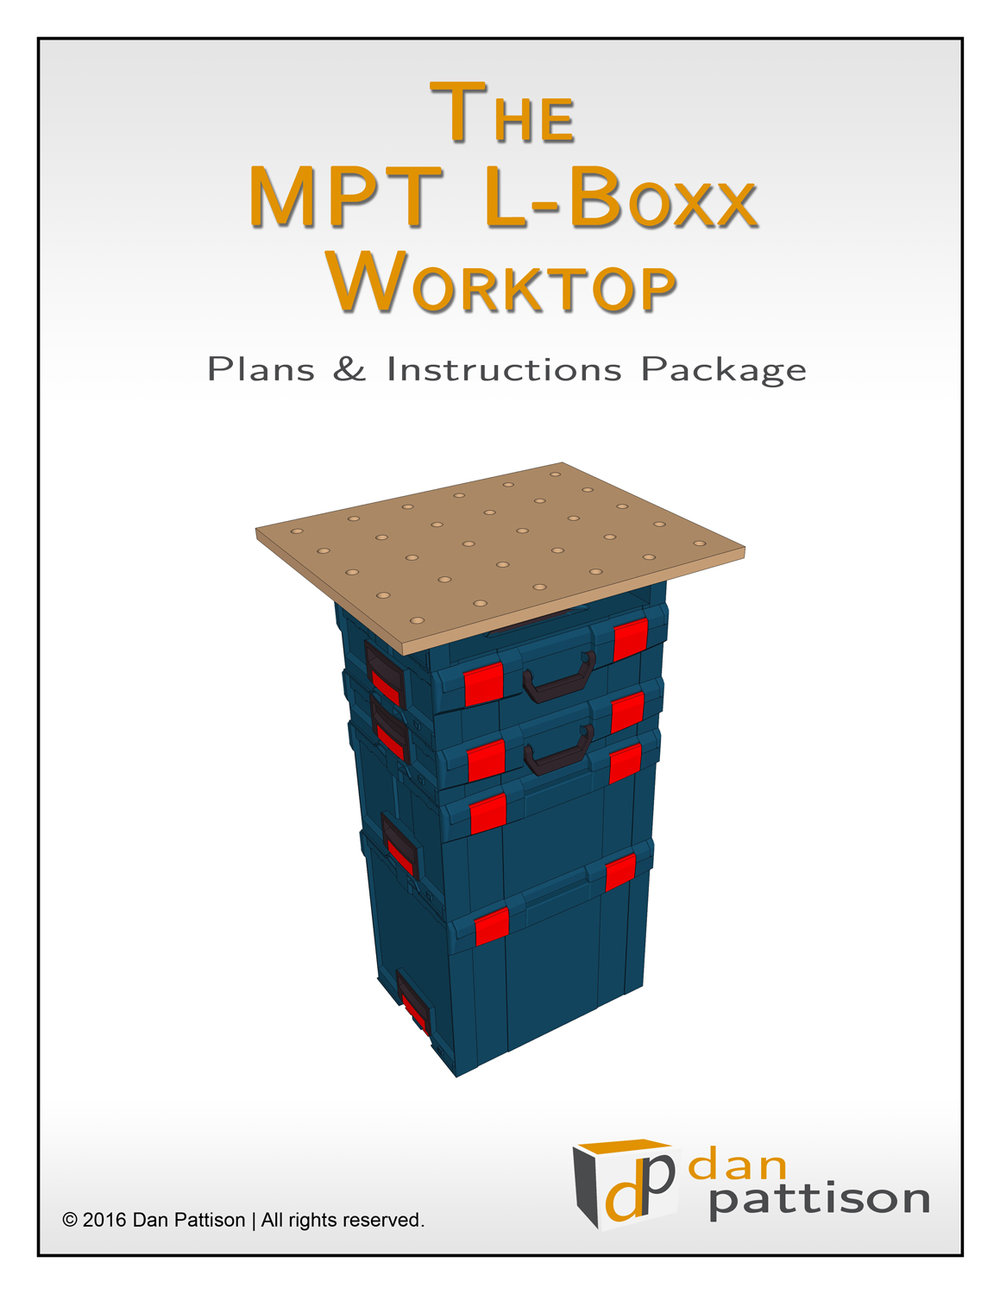 MPT L-Boxx Worktop Plans & Instructions